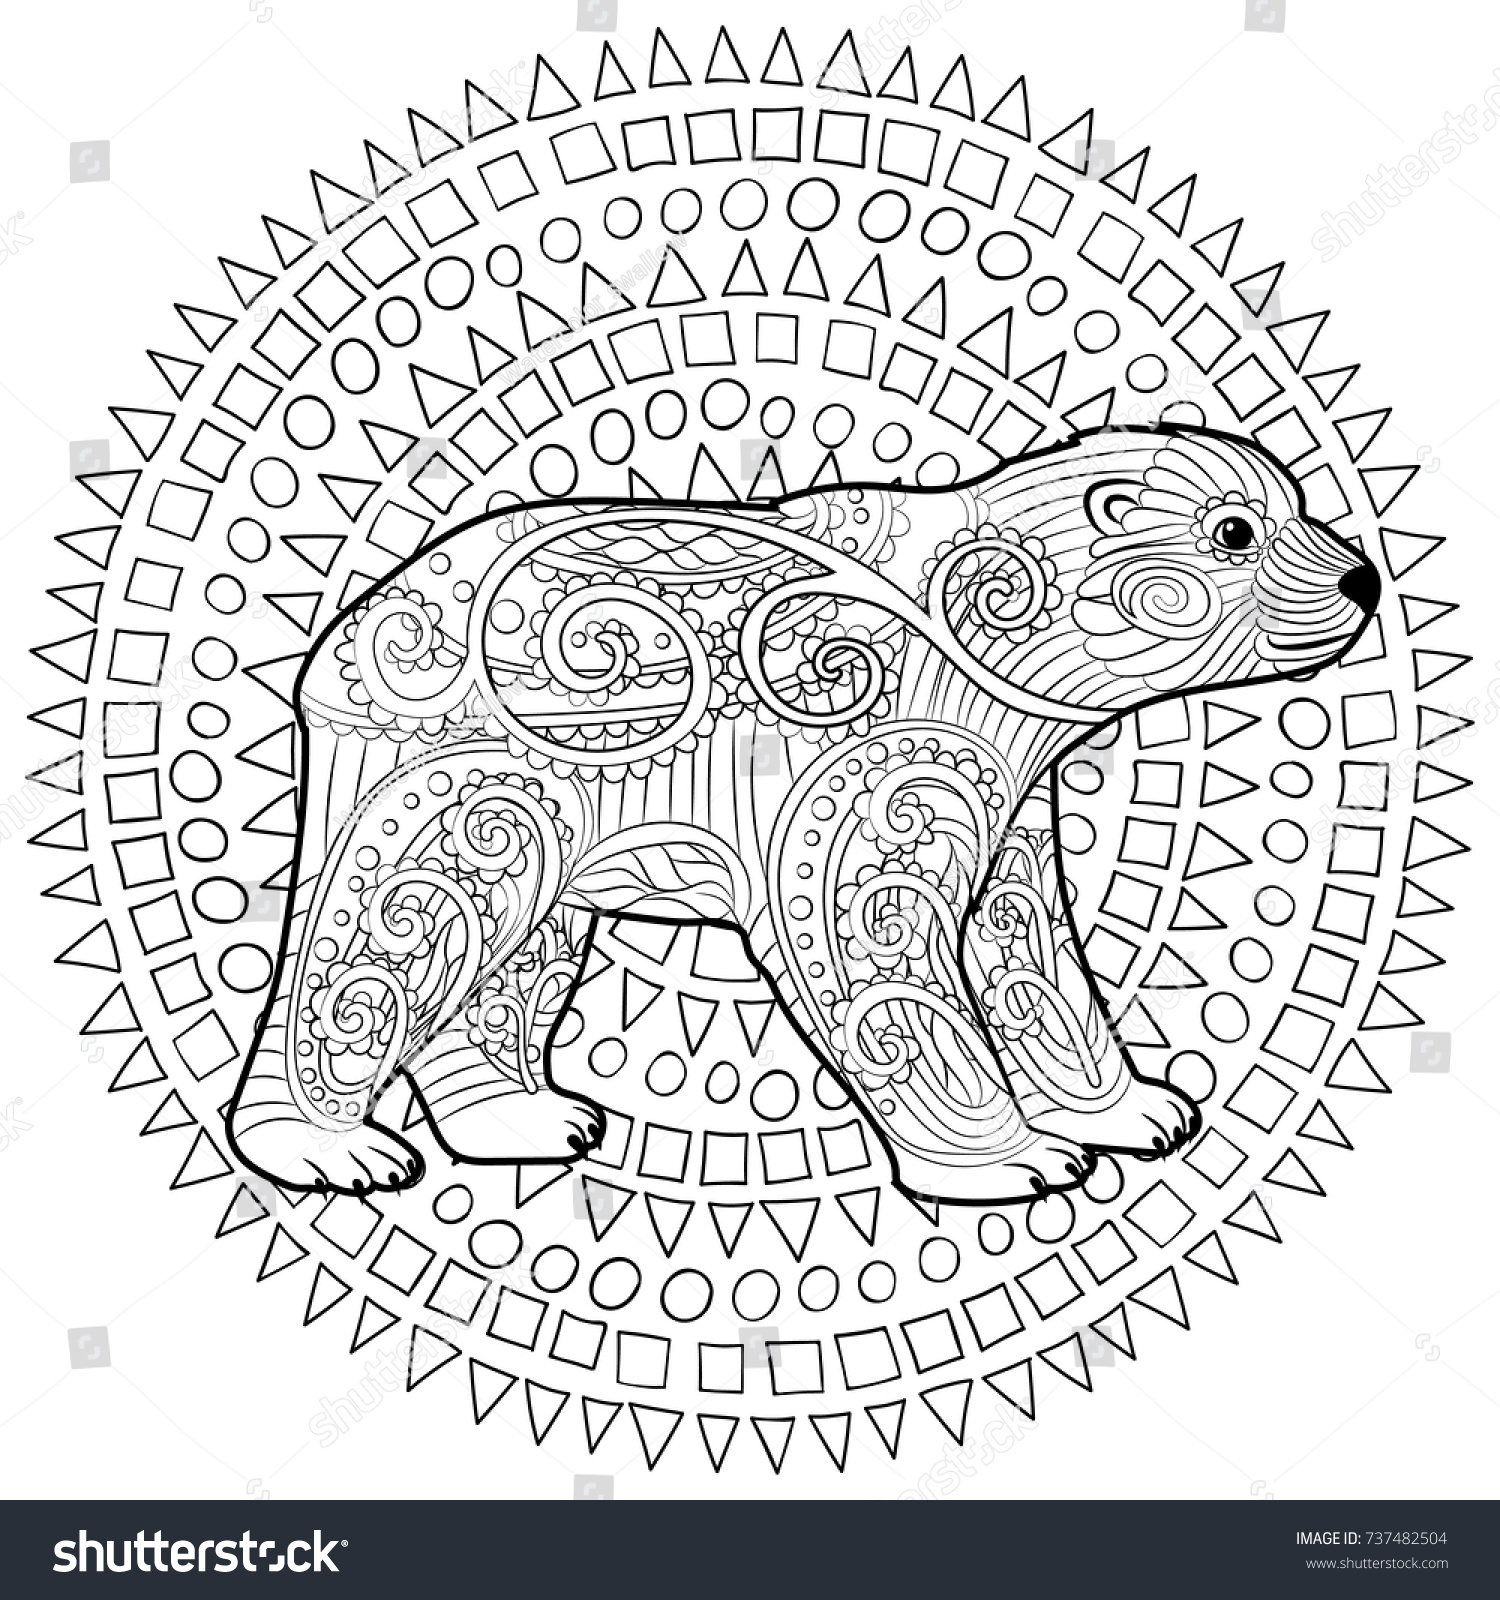 Hand Drawn Isolated Illustration Baby Polar Stock Vector 737482504